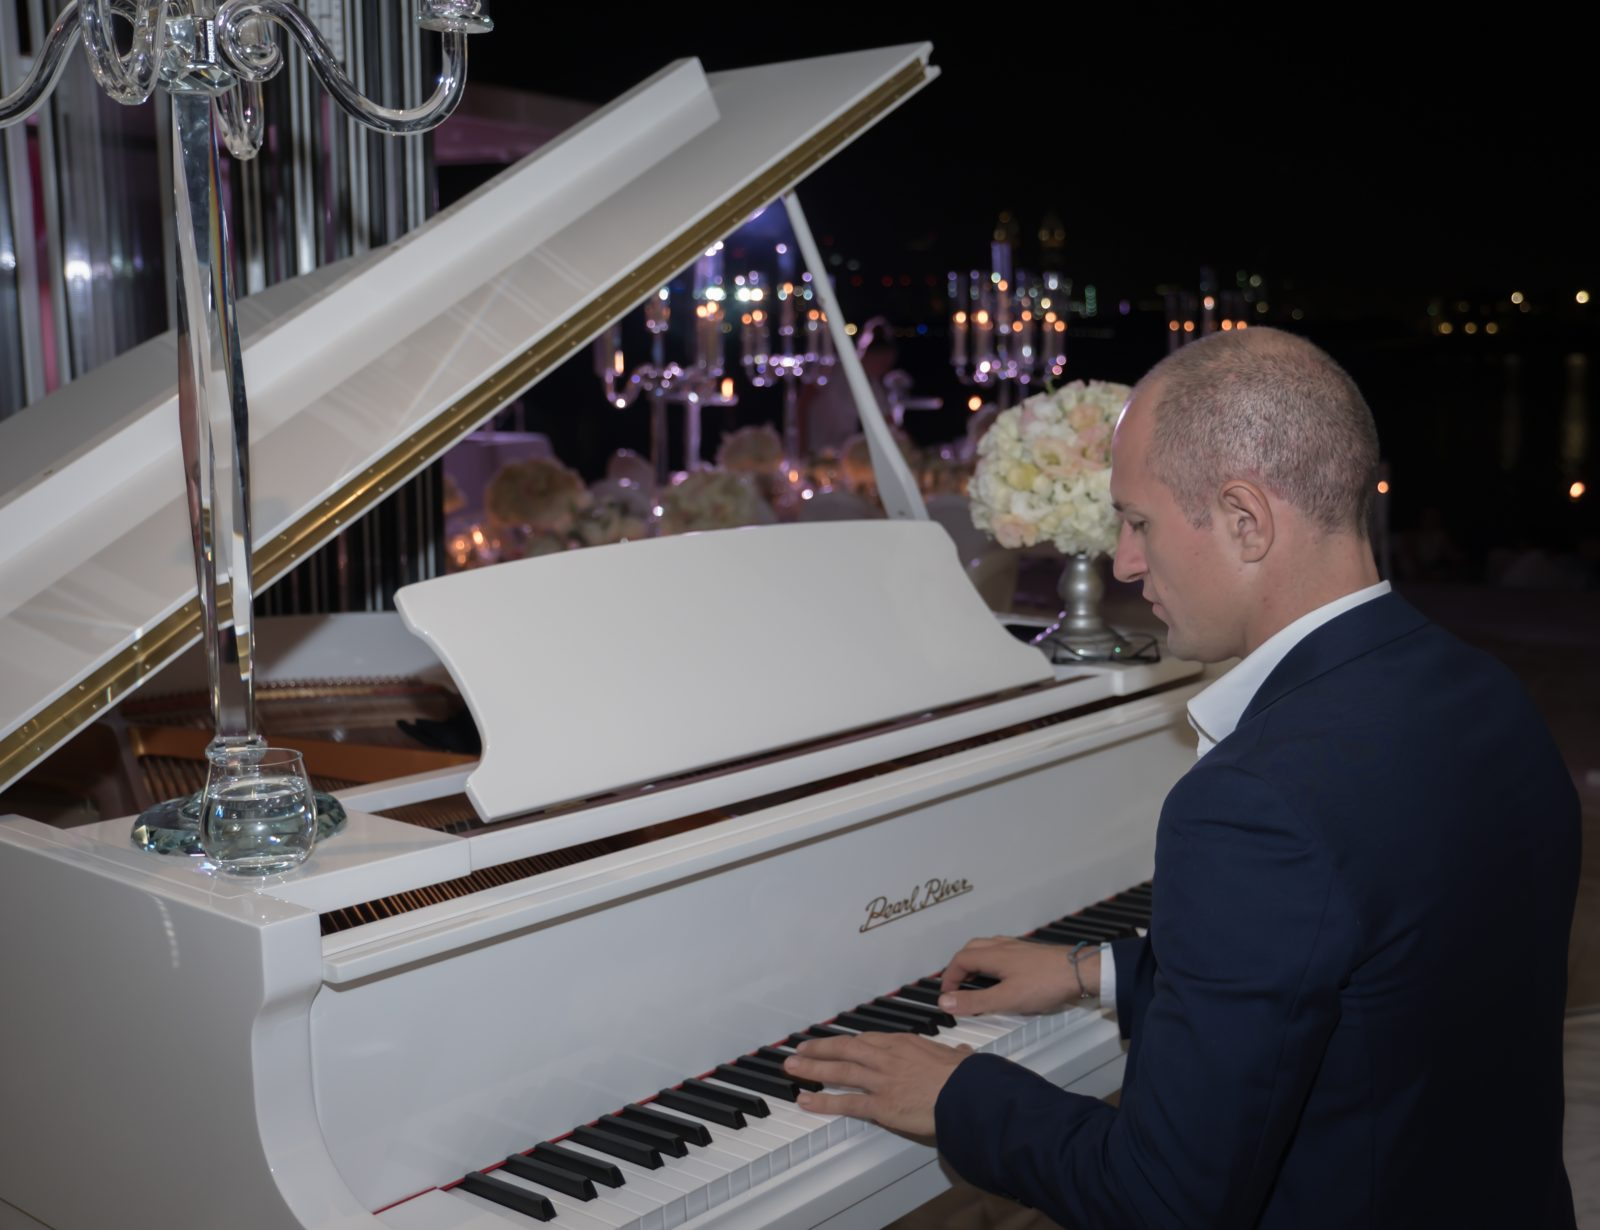 Man playing a baby grand white piano